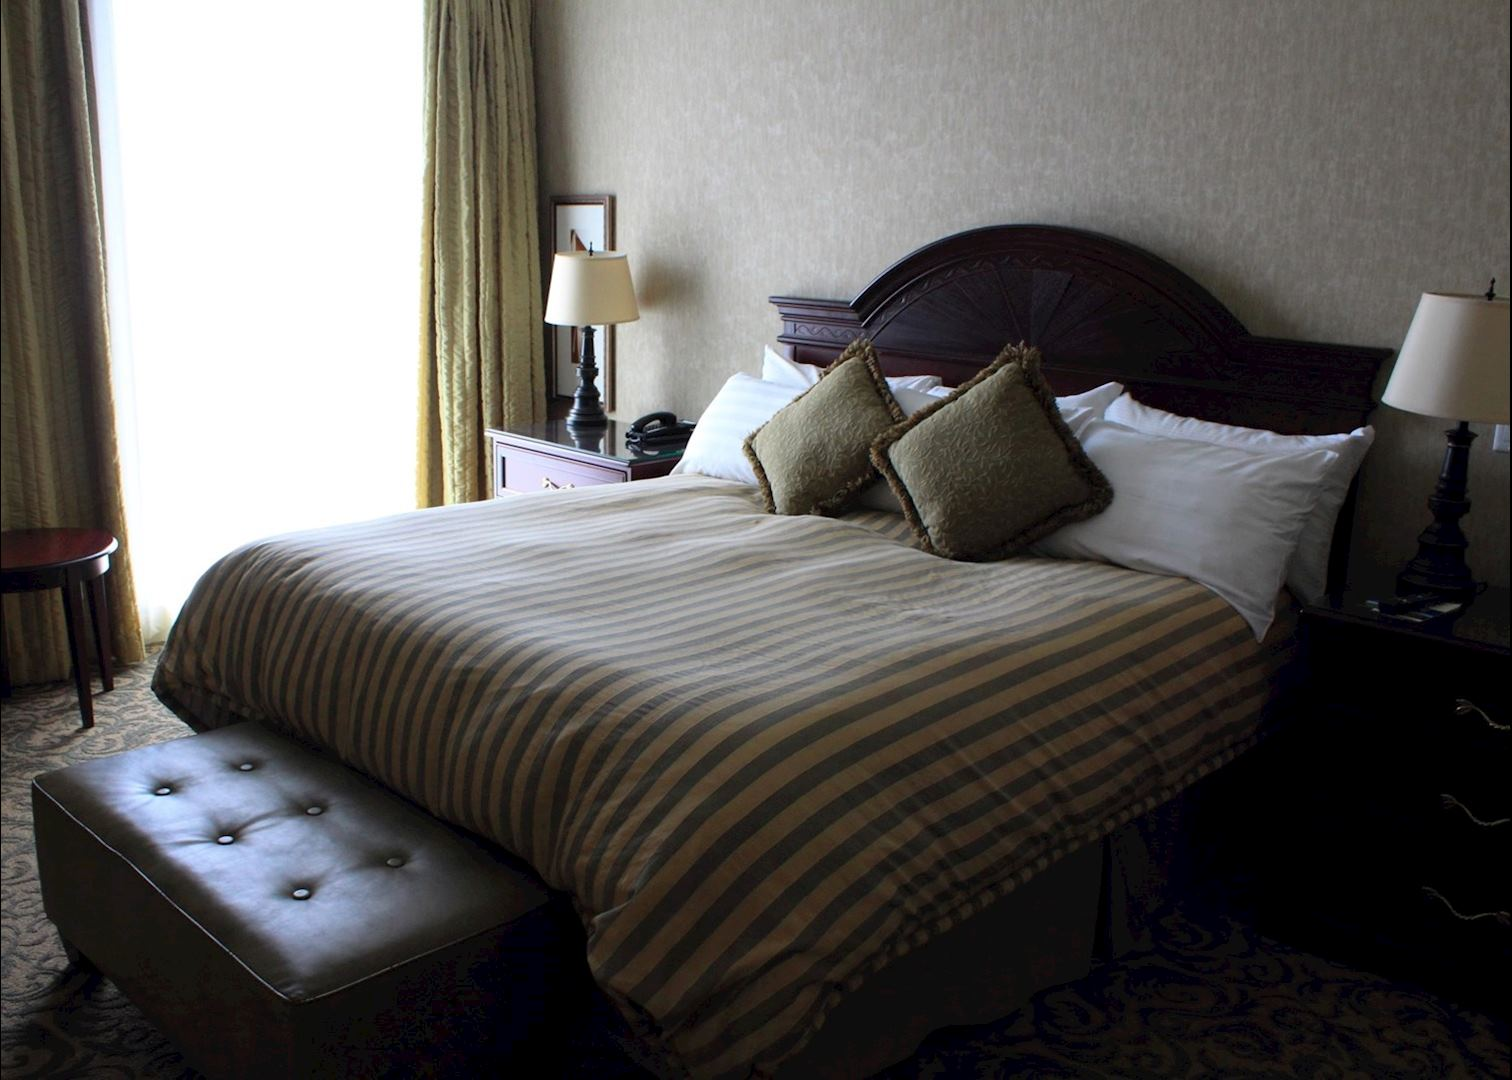 prince rupert chat rooms Prince rupert's crest hotel is situated on a high promontory overlooking the inner harbour, and enjoys one of the most scenic vantage points of kaien.